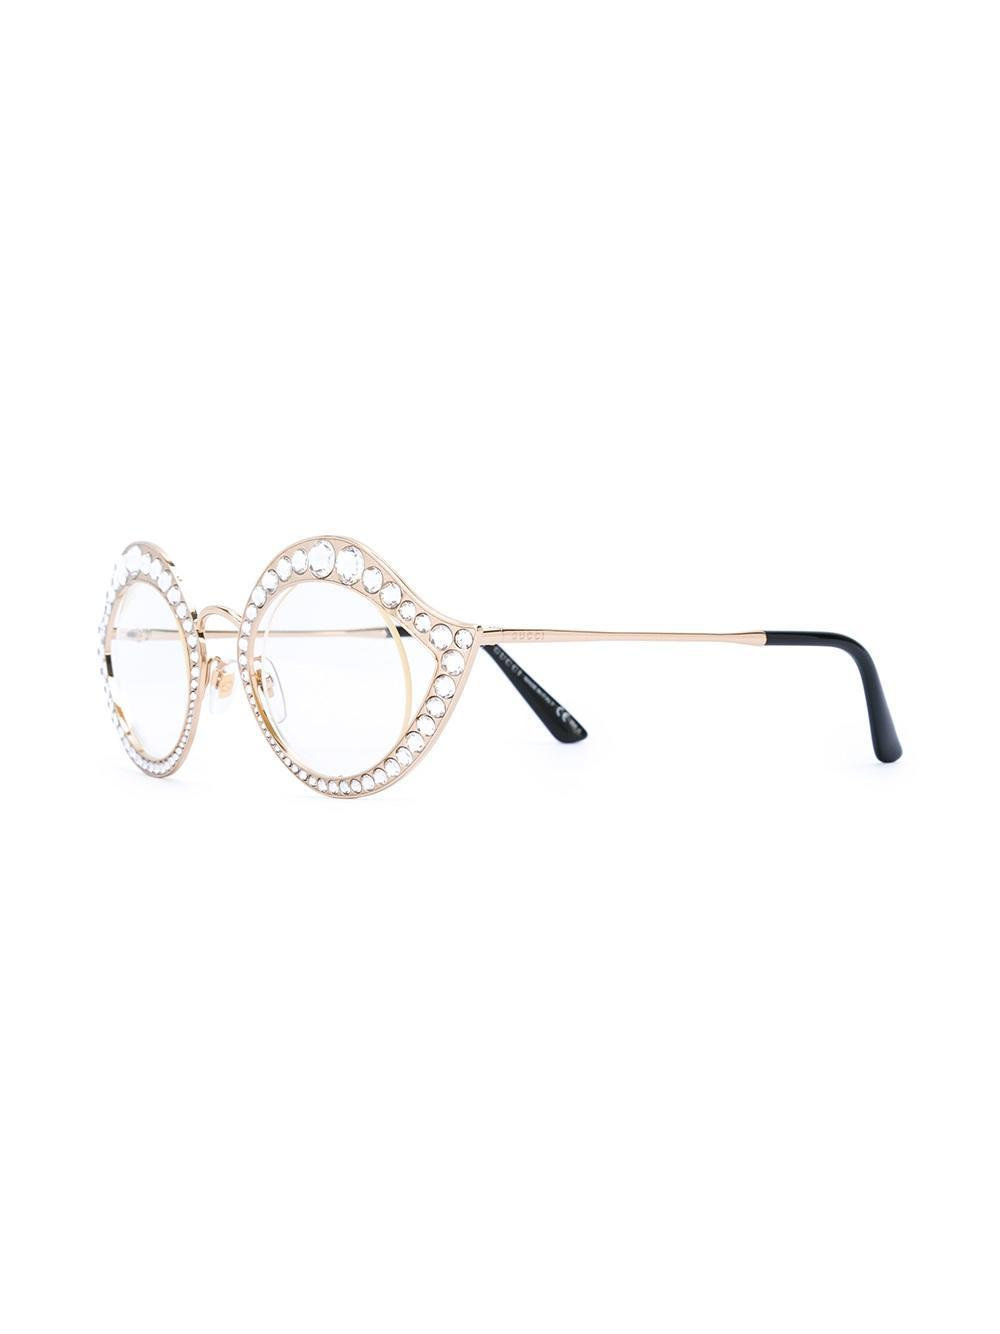 cbed883453a Gucci Swarovski Crystals Embellished Glasses in Metallic - Lyst